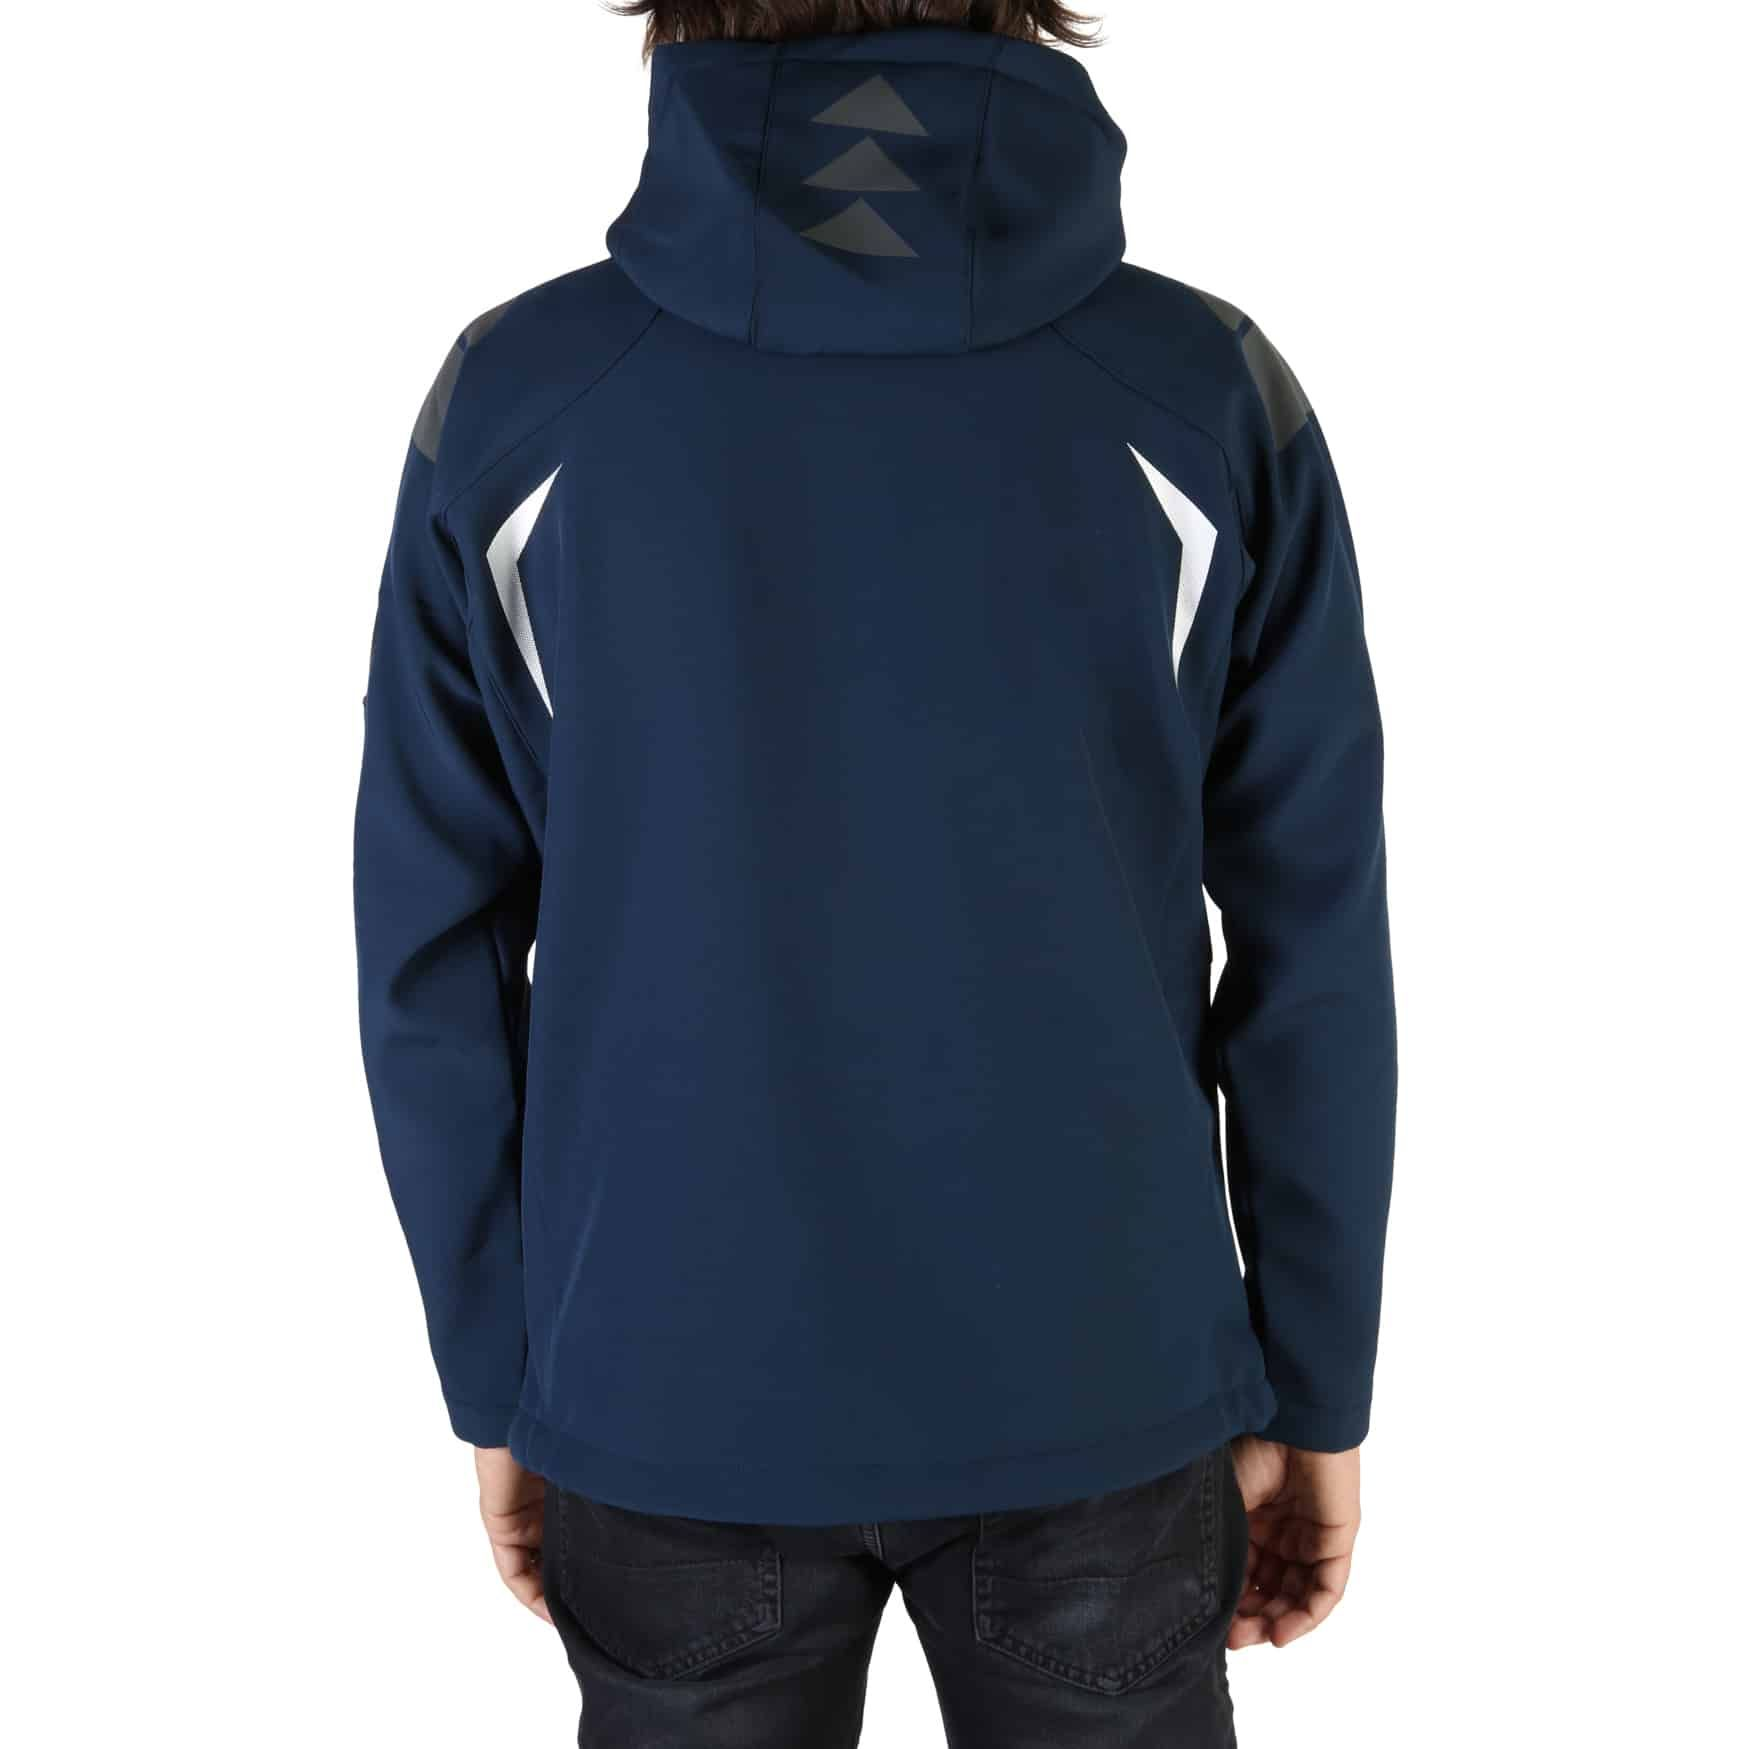 Geographical Norway – Techno_man Navy